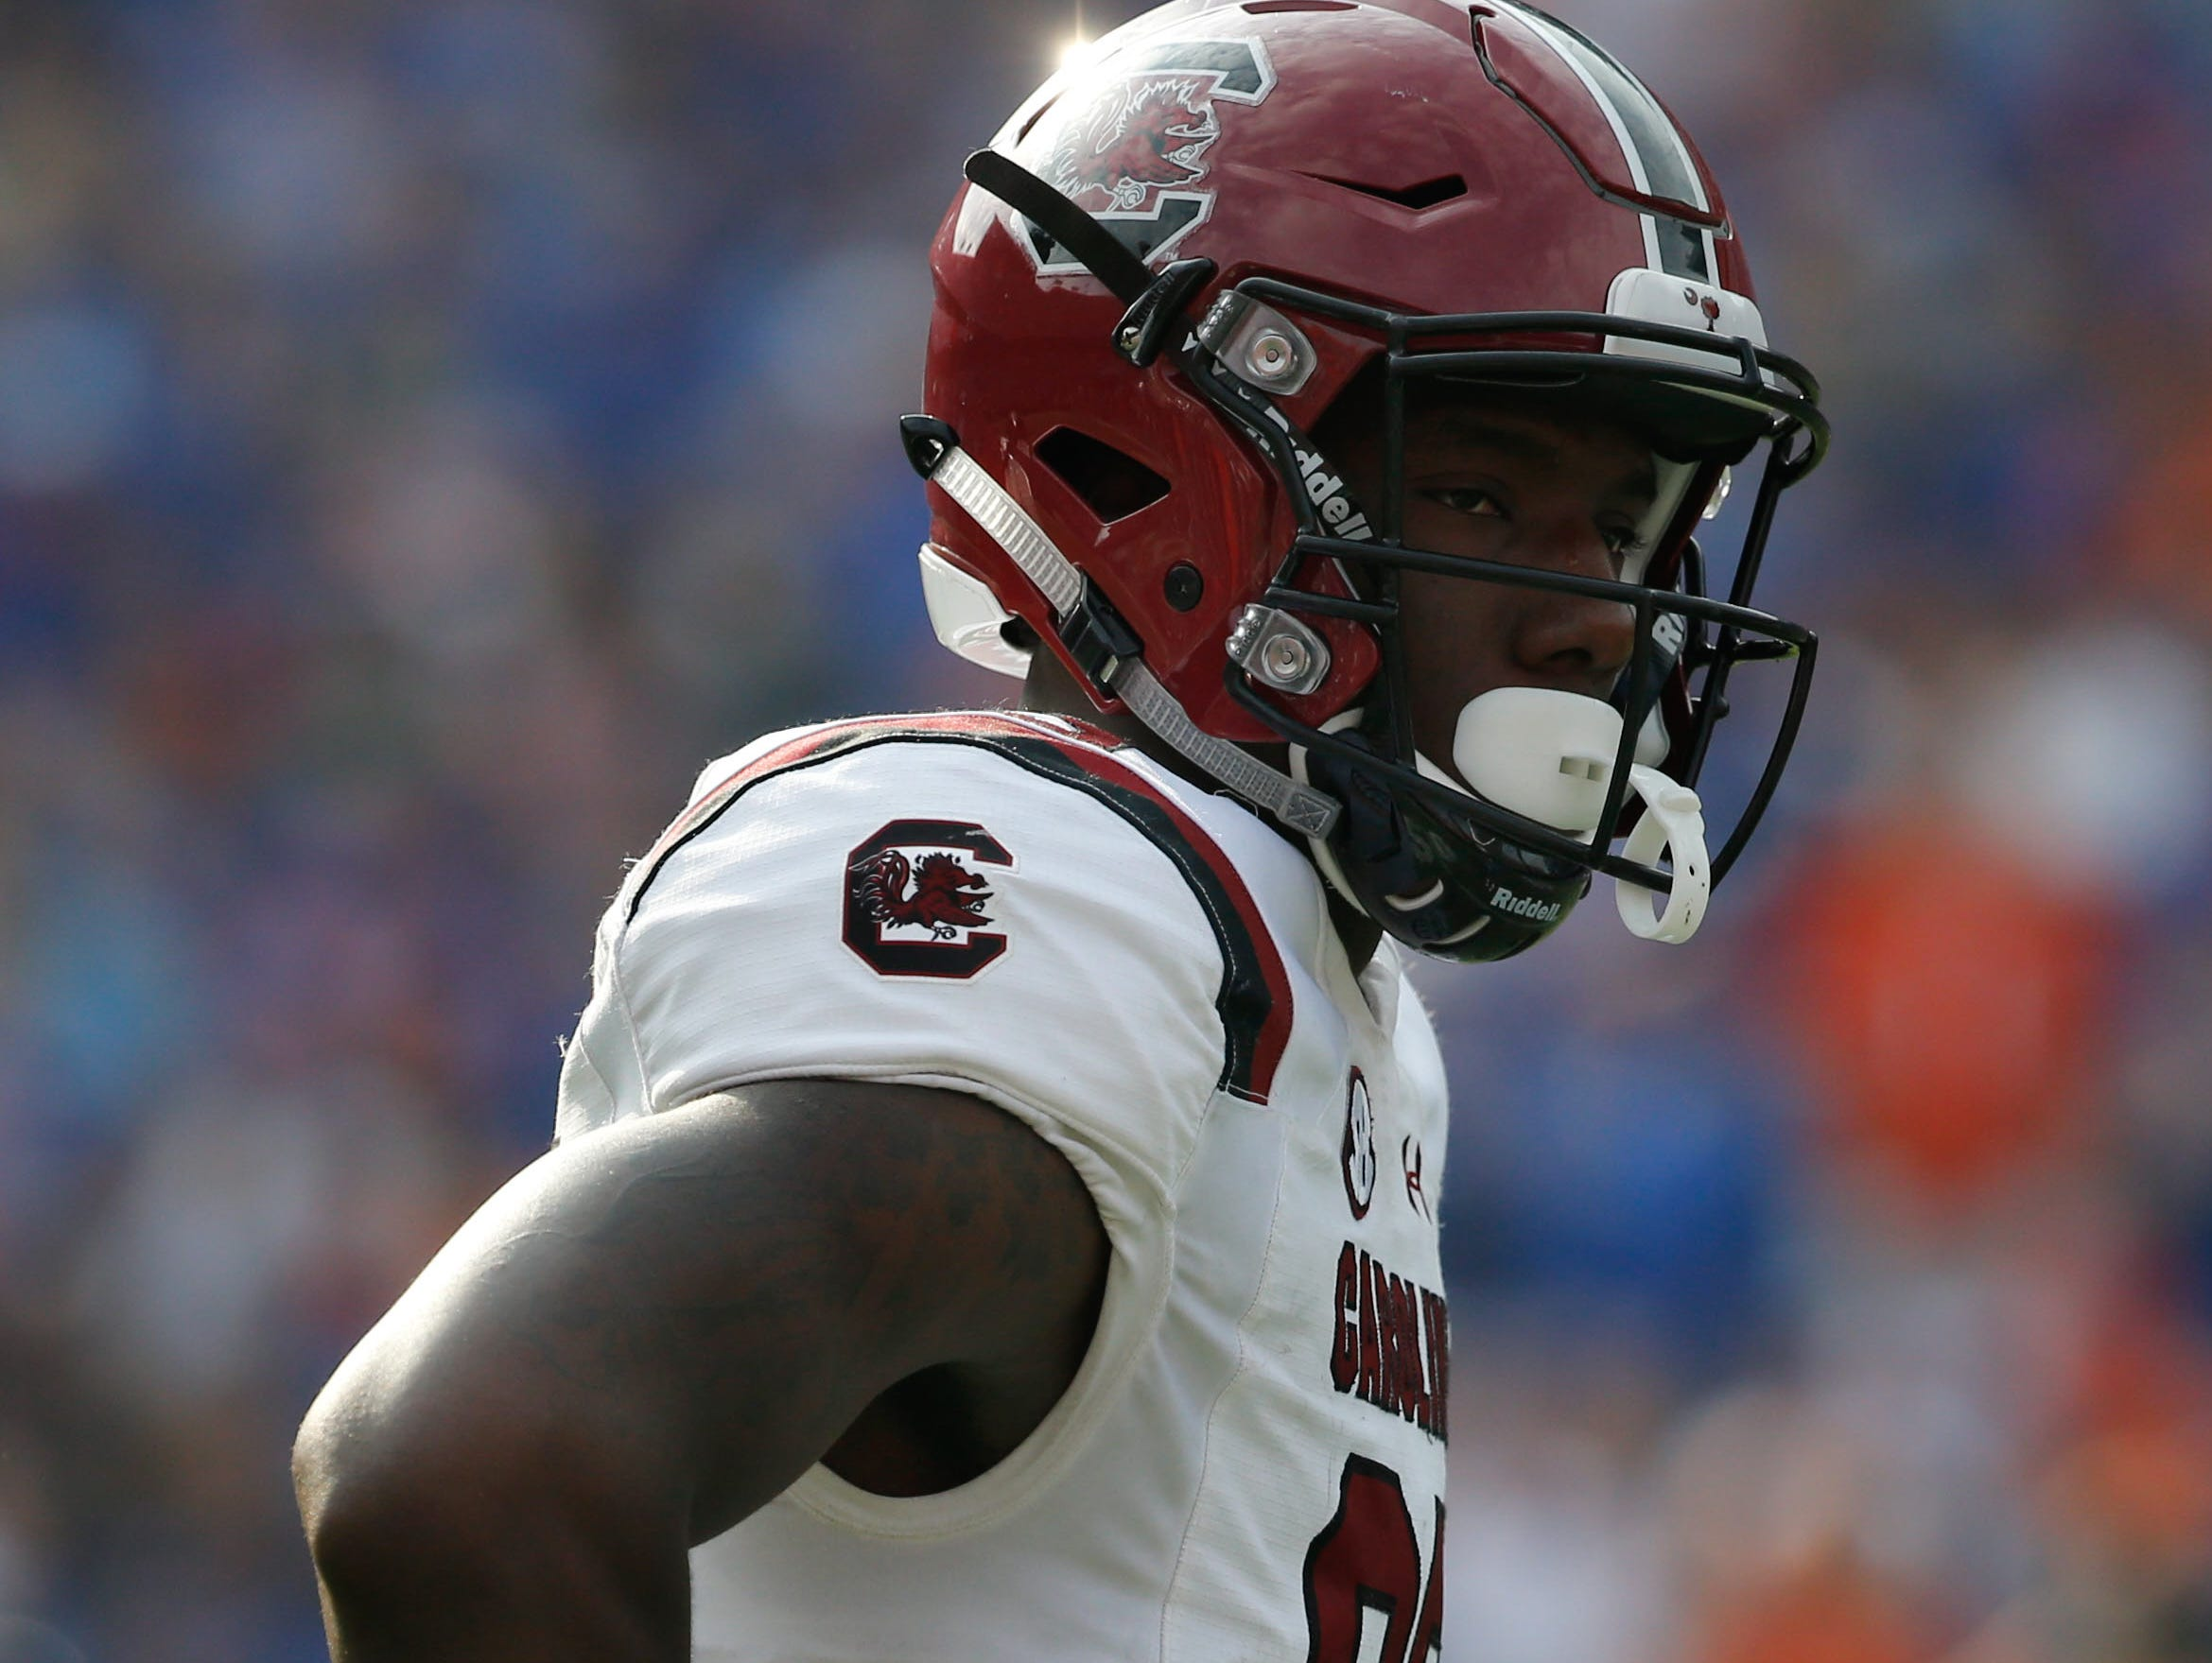 South Carolina's three wide receiver offensive plans in 2017 should often target Bryan Edwards (89).